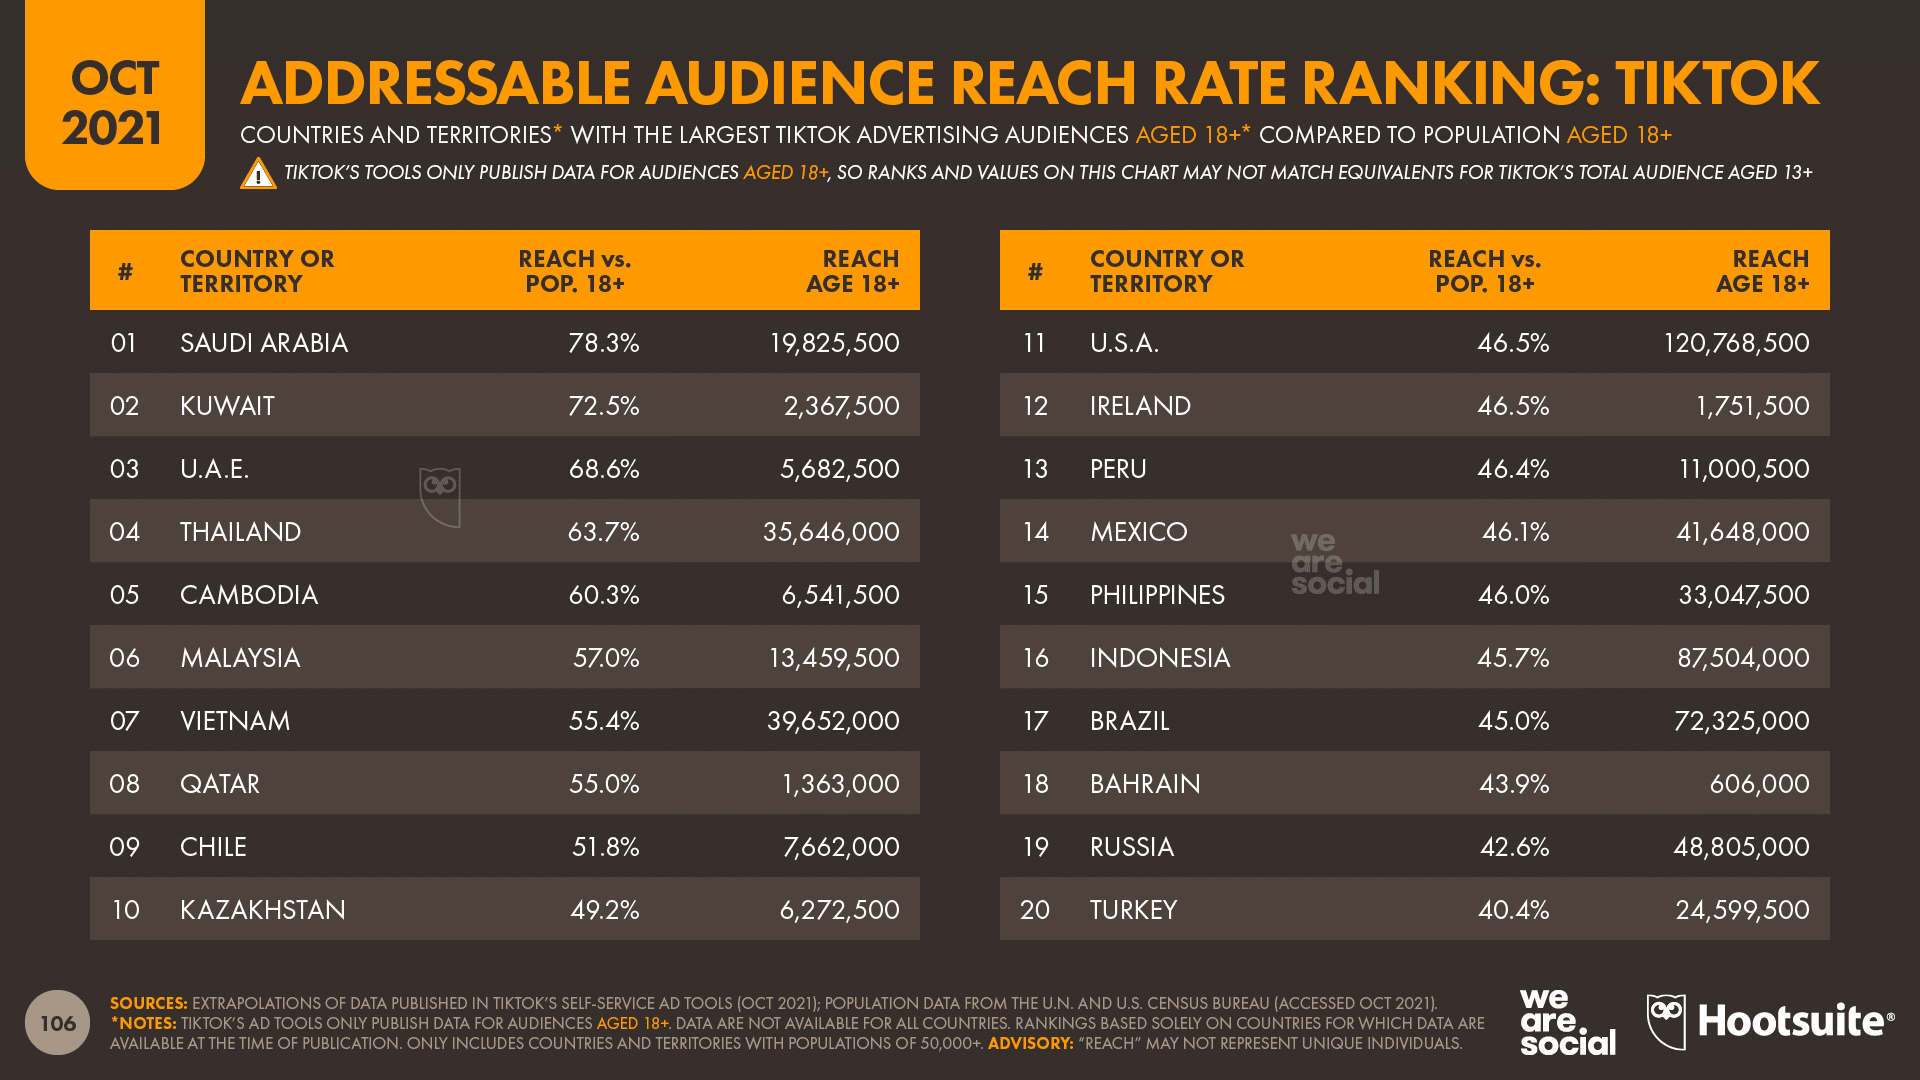 chart showing Addressable Audience Reach Rate Ranking for TikTok